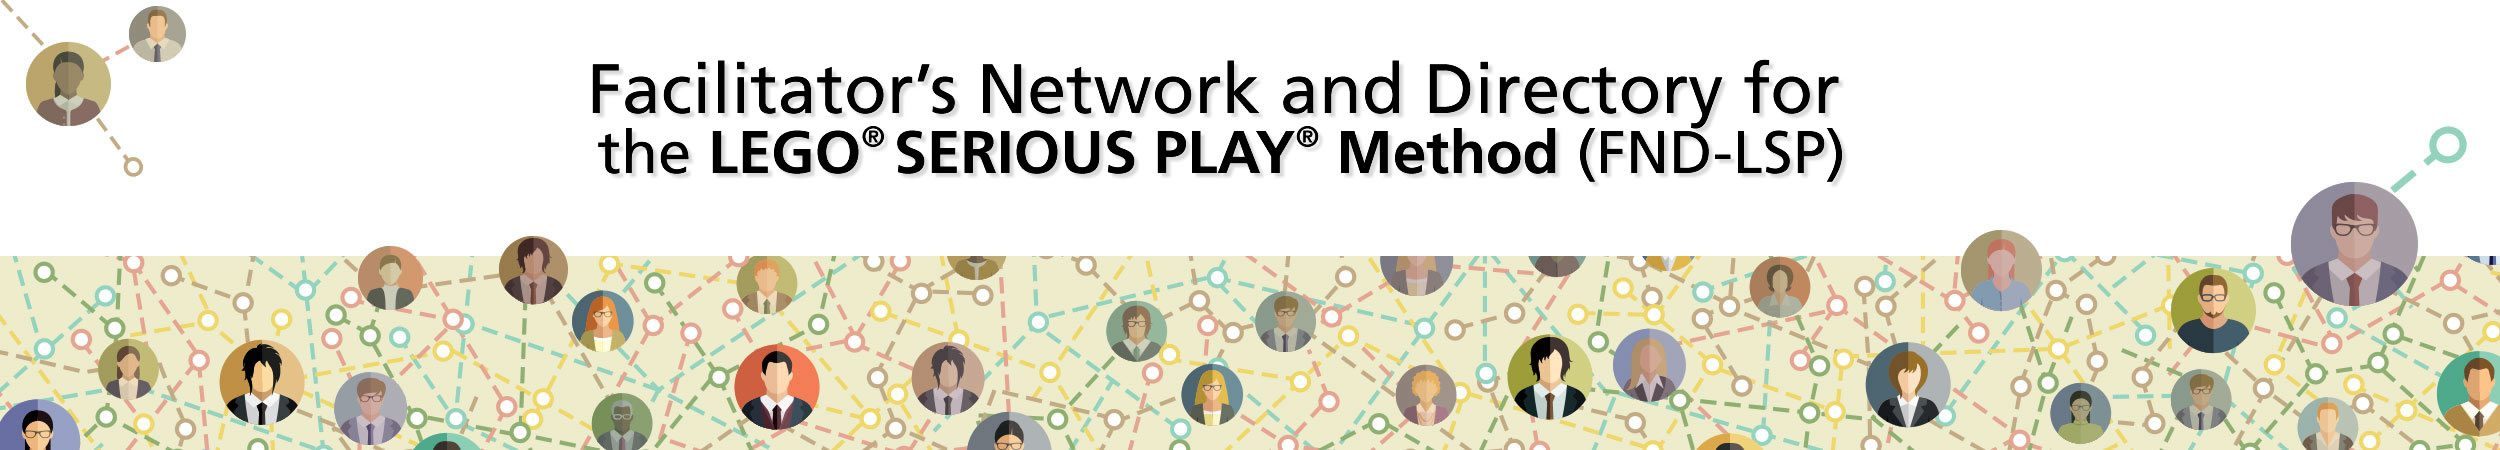 Facilitator's Network and Directory for the LEGO® SERIOUS PLAY® Method (FND-LSP)